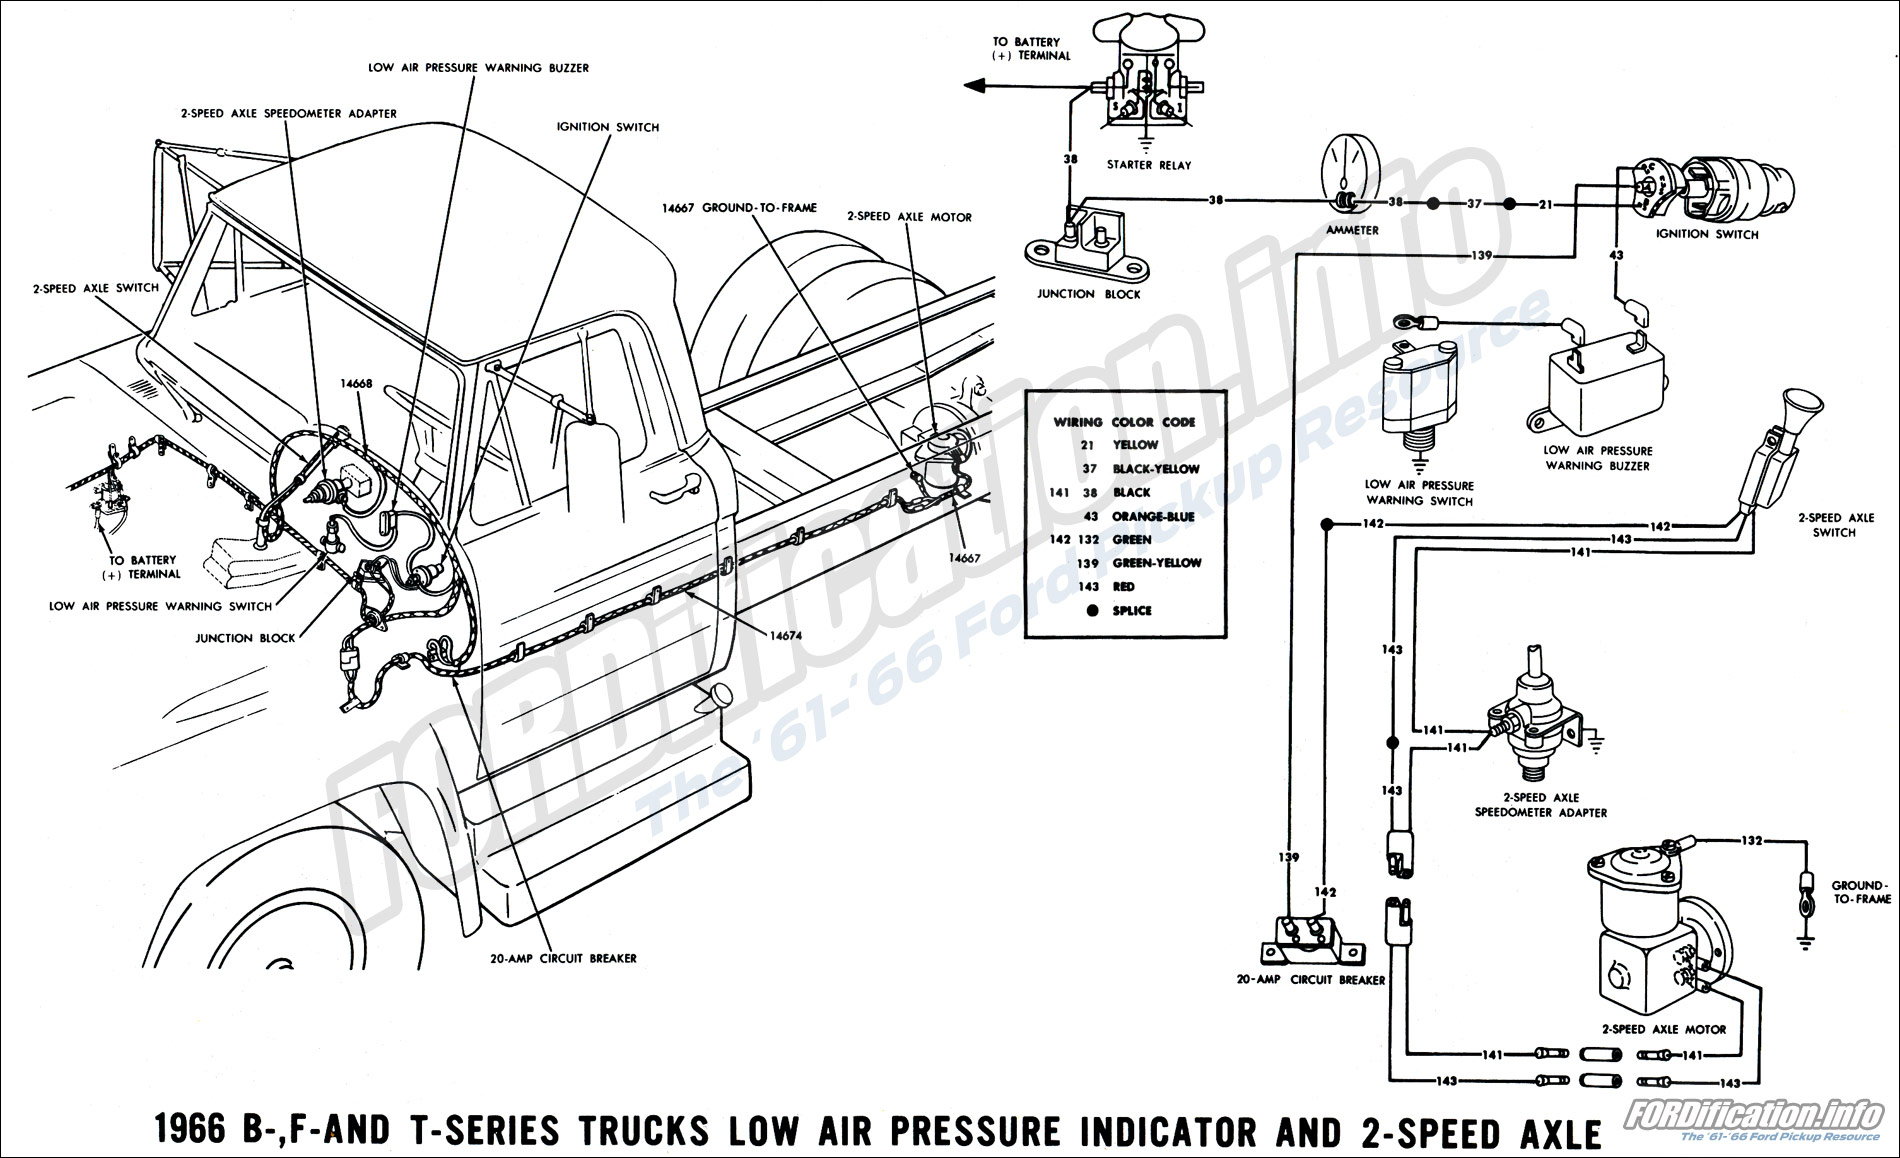 1966 ford truck wiring diagrams - fordification.info - the ... wiring diagram for 1949 ford f100 #3